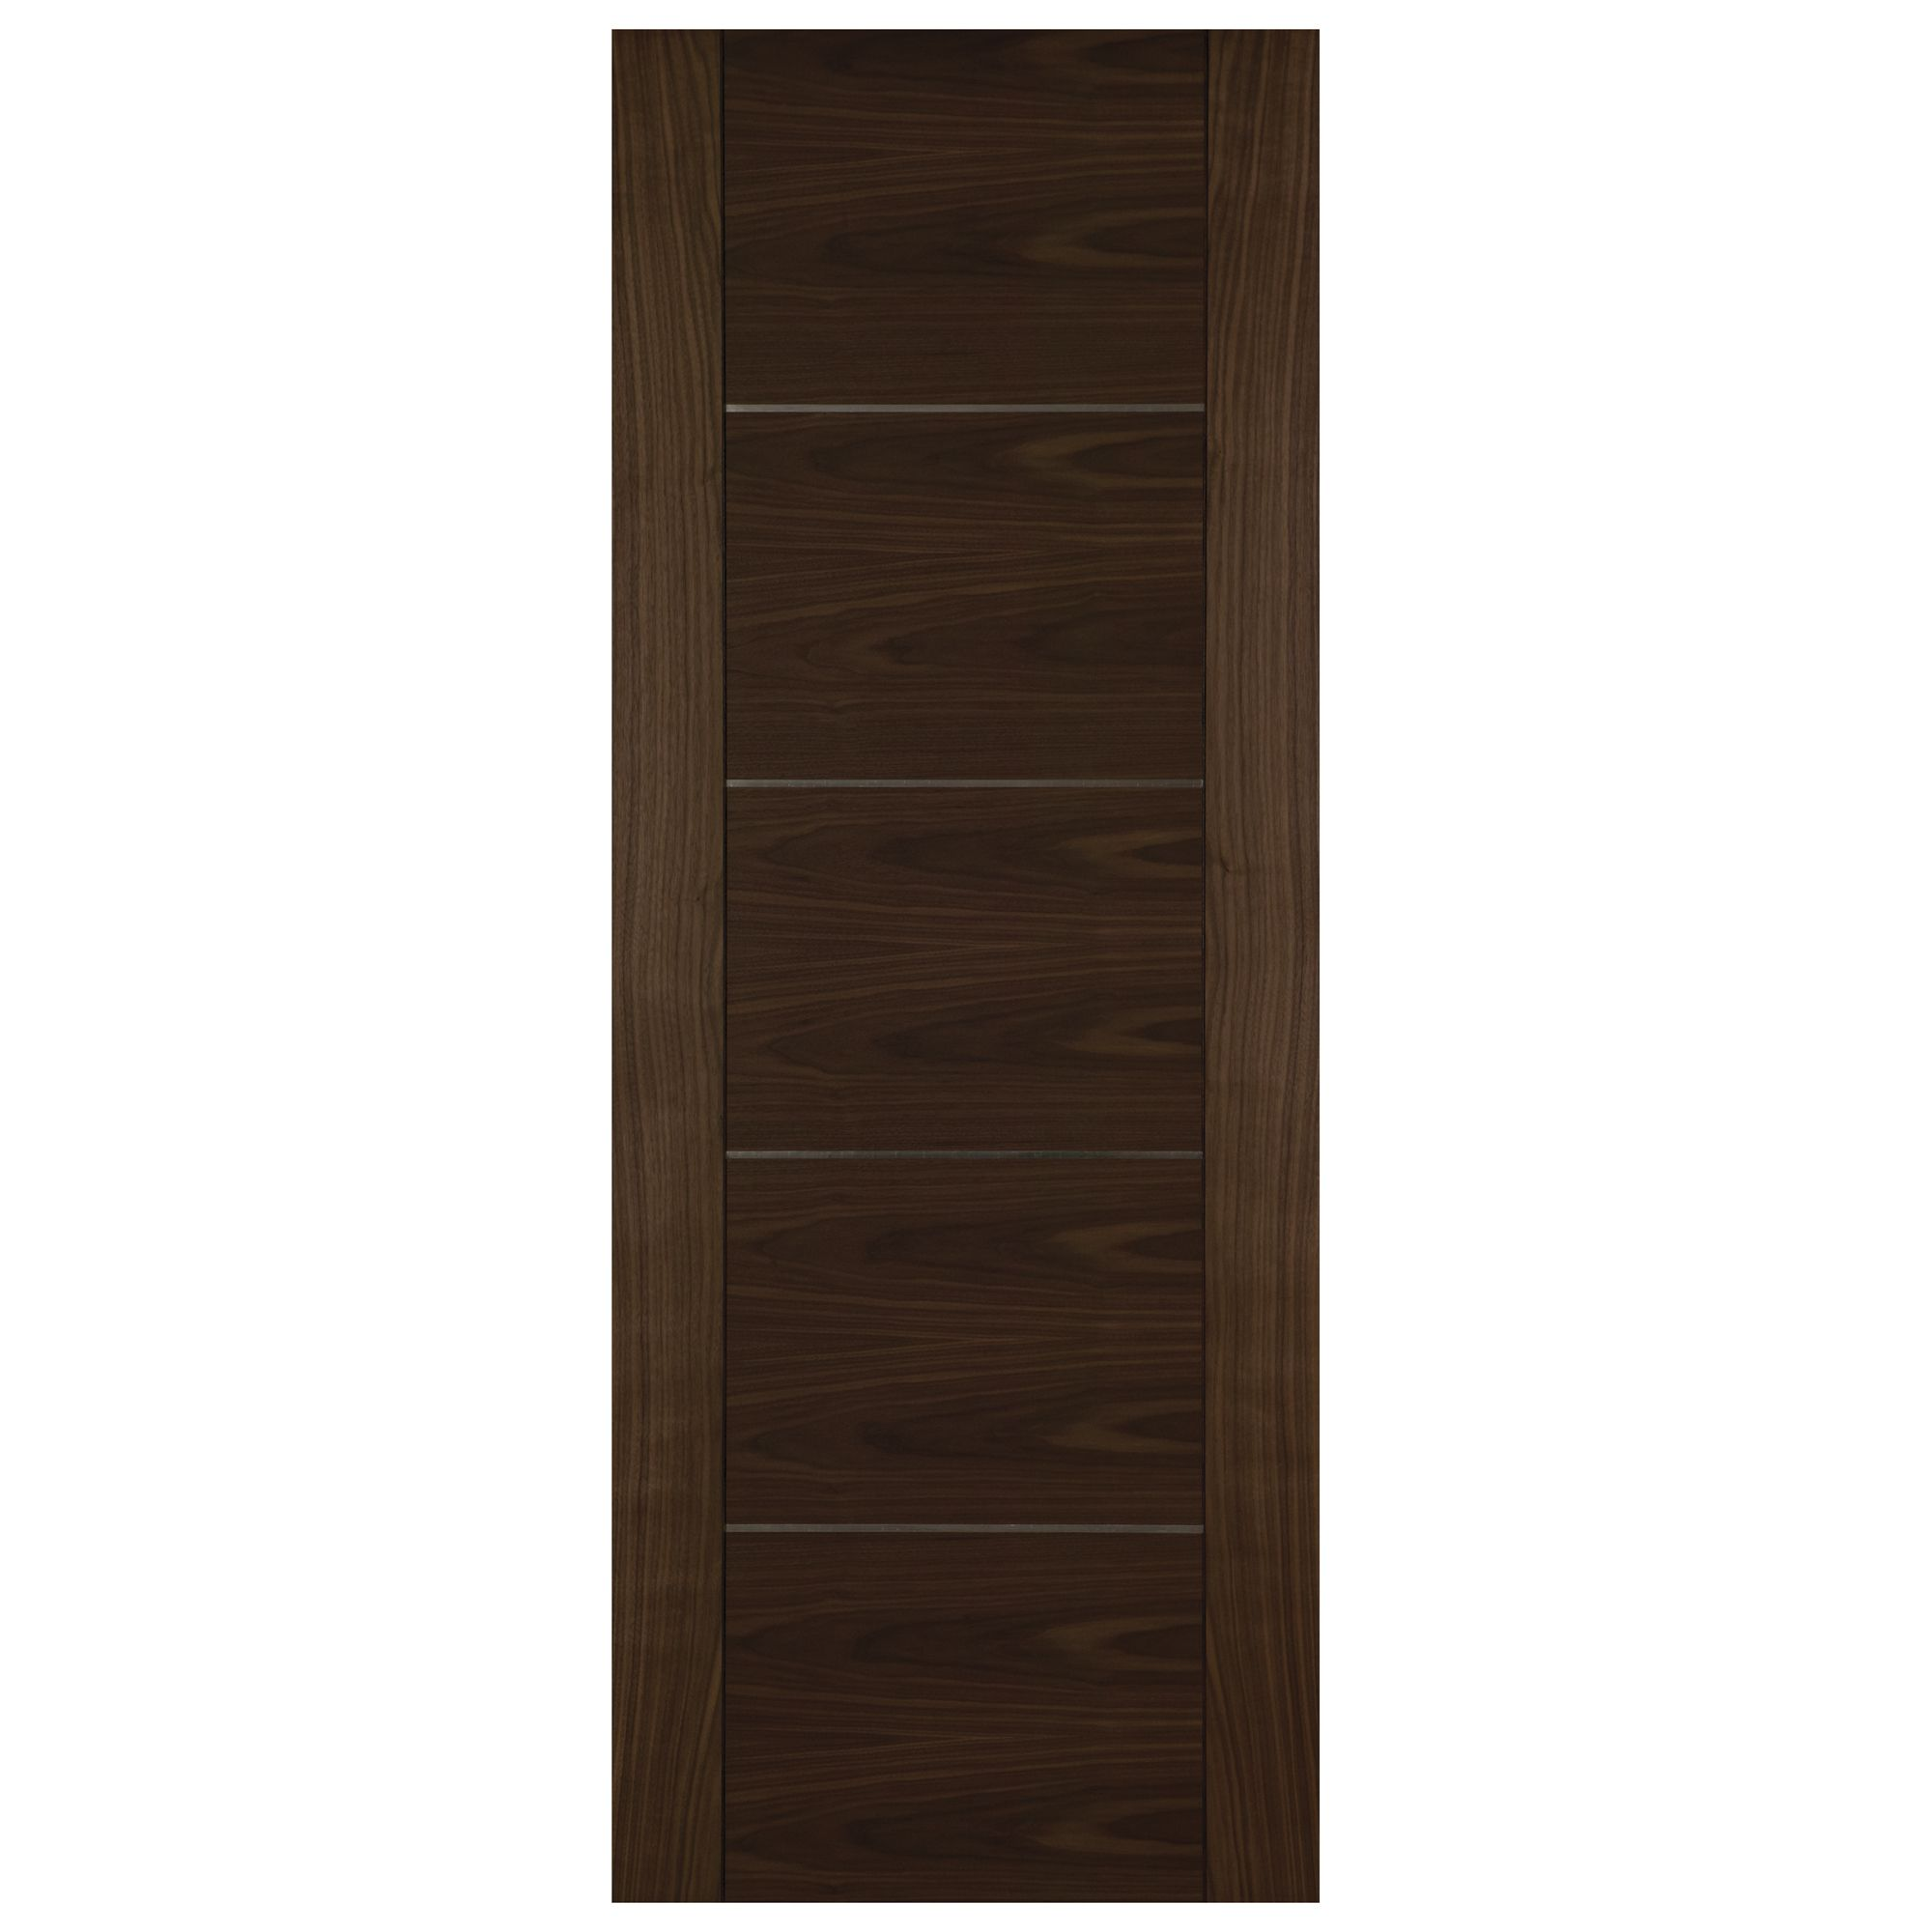 Flush 5 Panel Walnut Veneer Unglazed Internal Standard Door H 1981mm W 838mm Departments